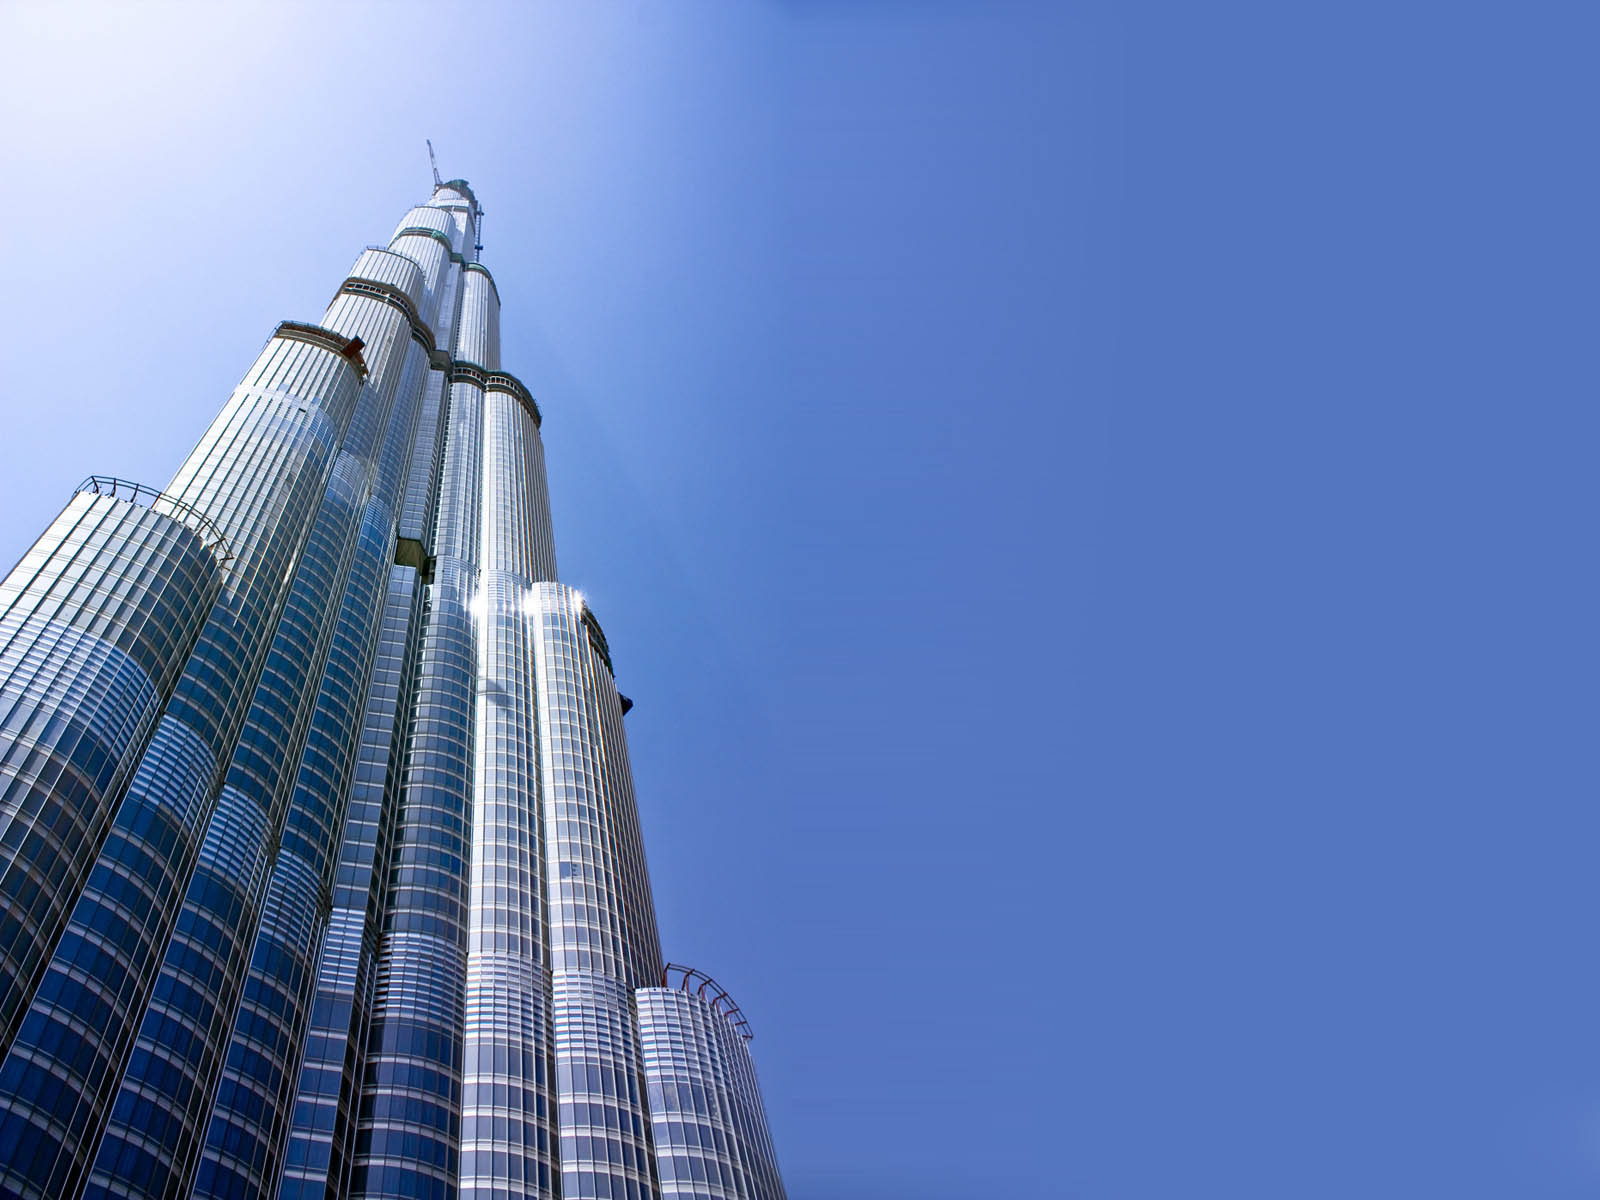 World Largest Tower Downtown Burj Dubai | 2013 Wallpaper